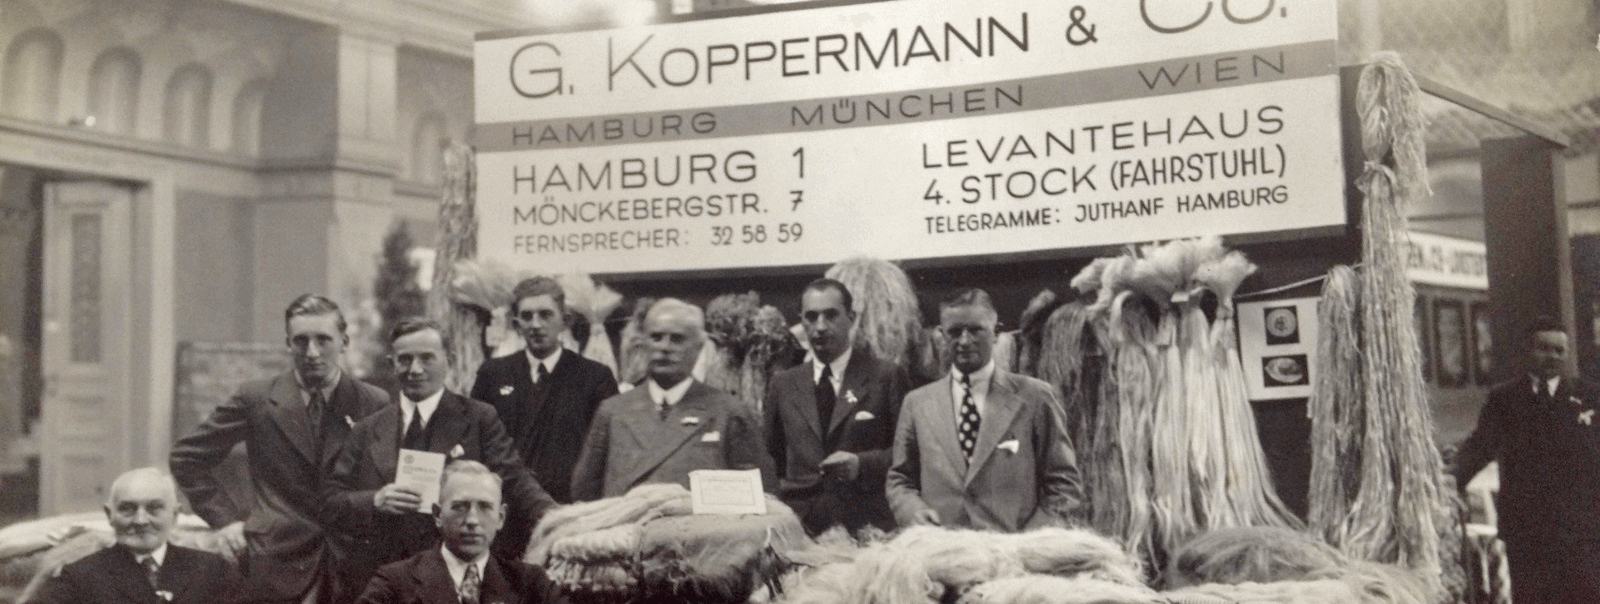 Koppermann & Co. GmbH